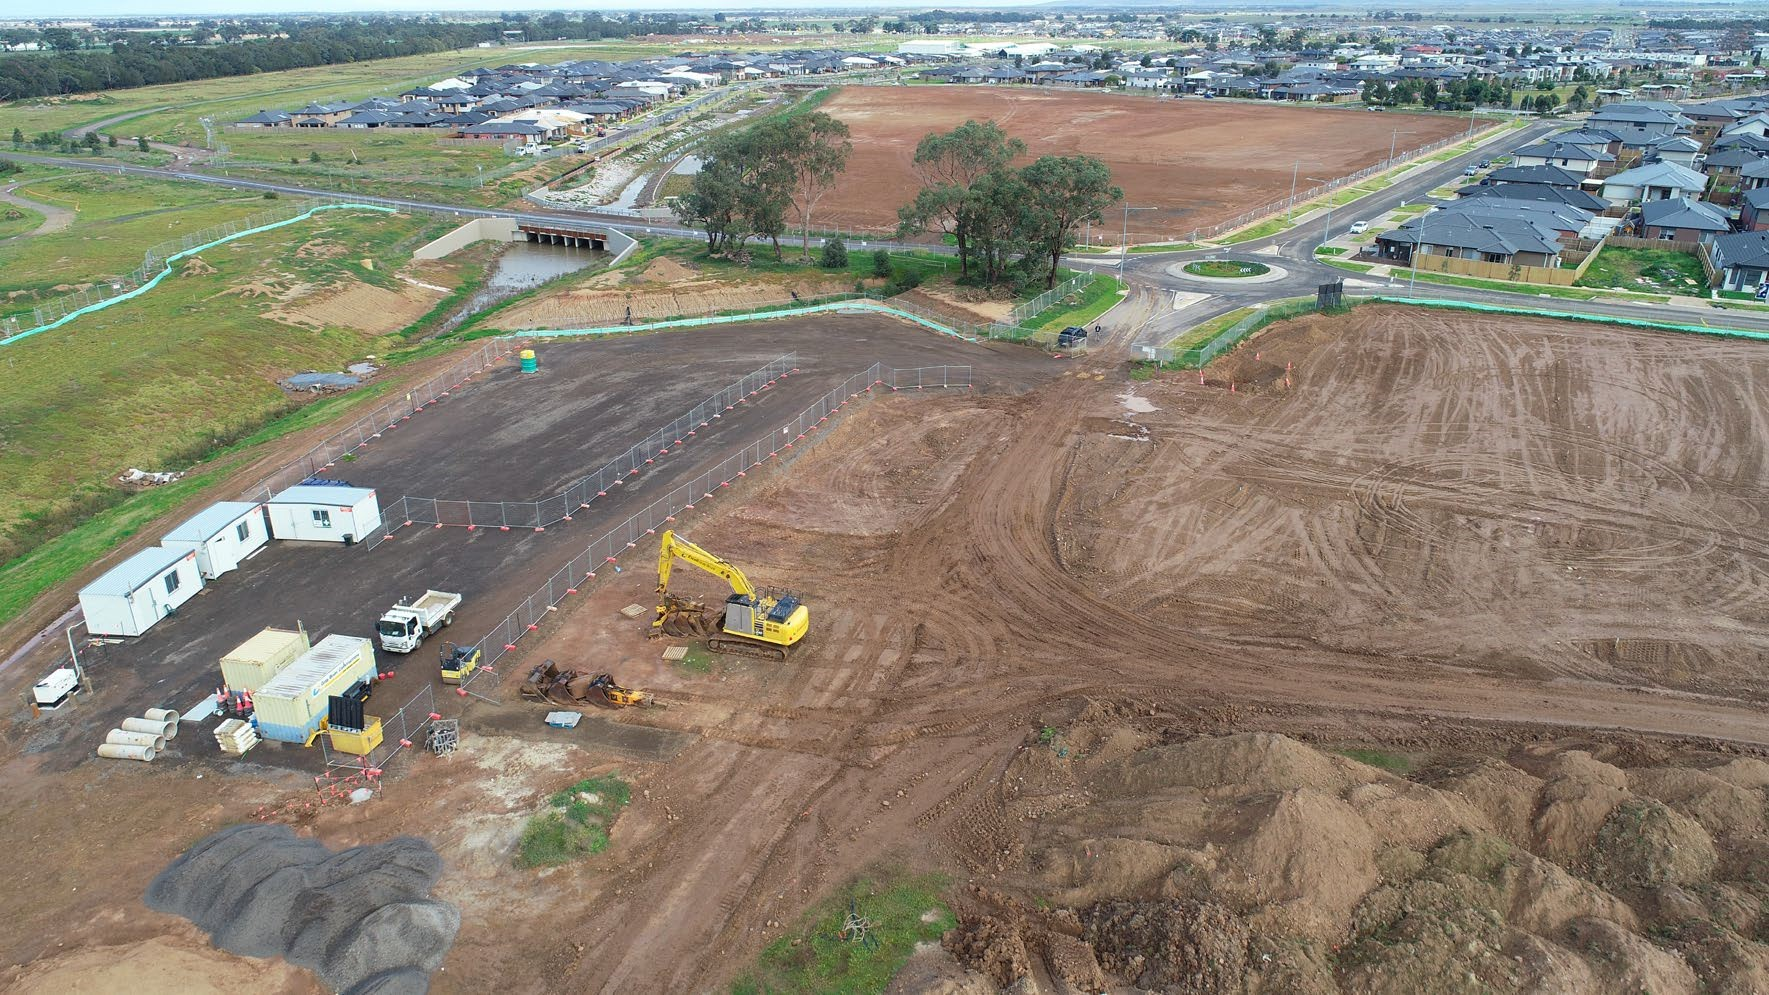 Drone photo of Stages 27-29 taken on 6 July 2020 looking west.